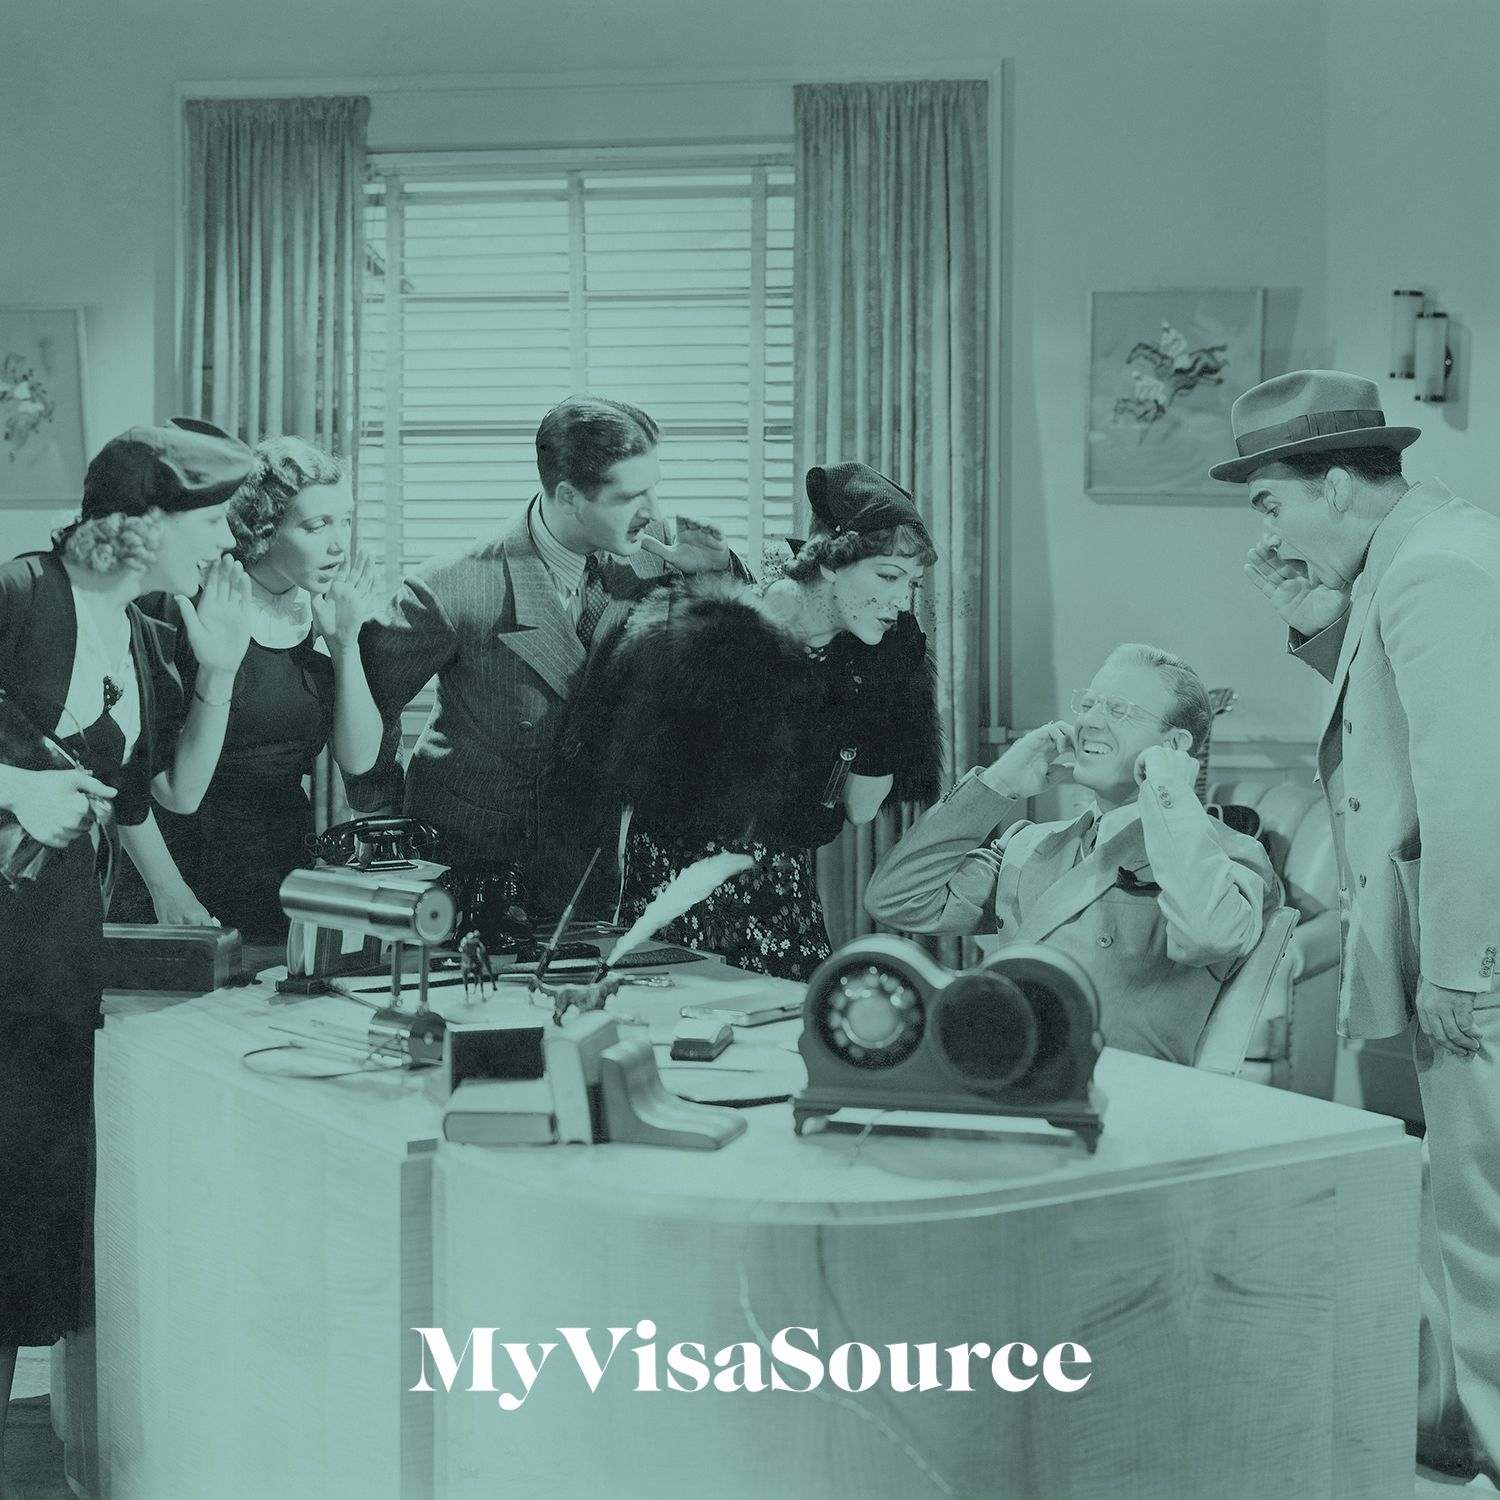 1950s office scene with everyone dressed in those days clothing my visa source